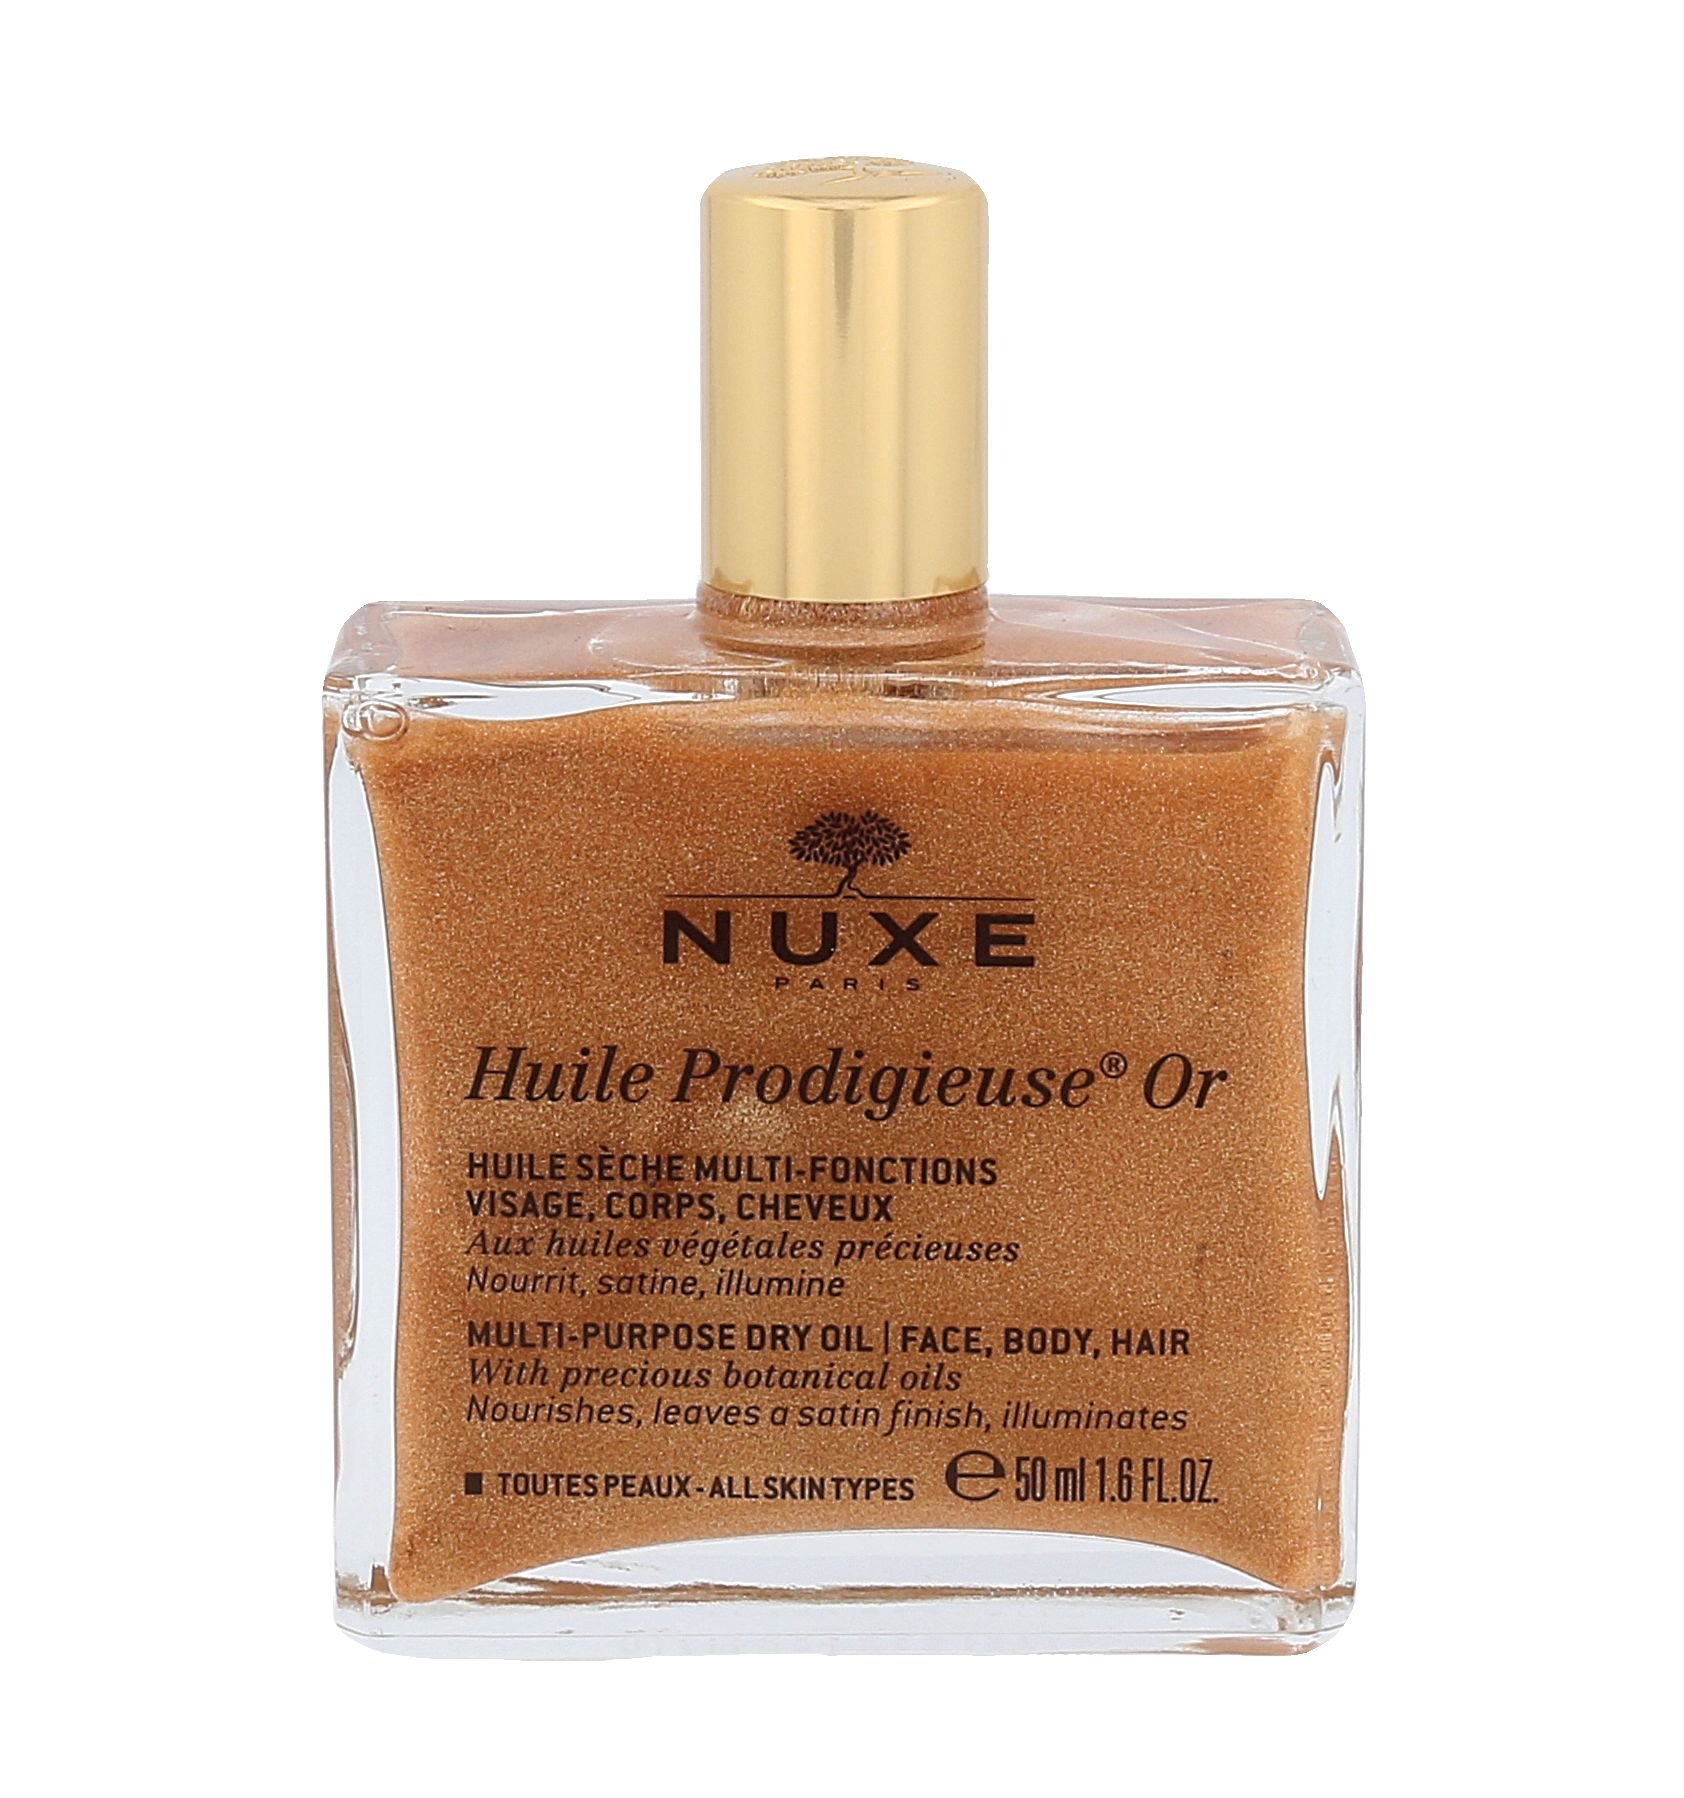 Nuxe Huile Prodigieuse Or Multi Purpose Dry Oil Cosmetic 50ml